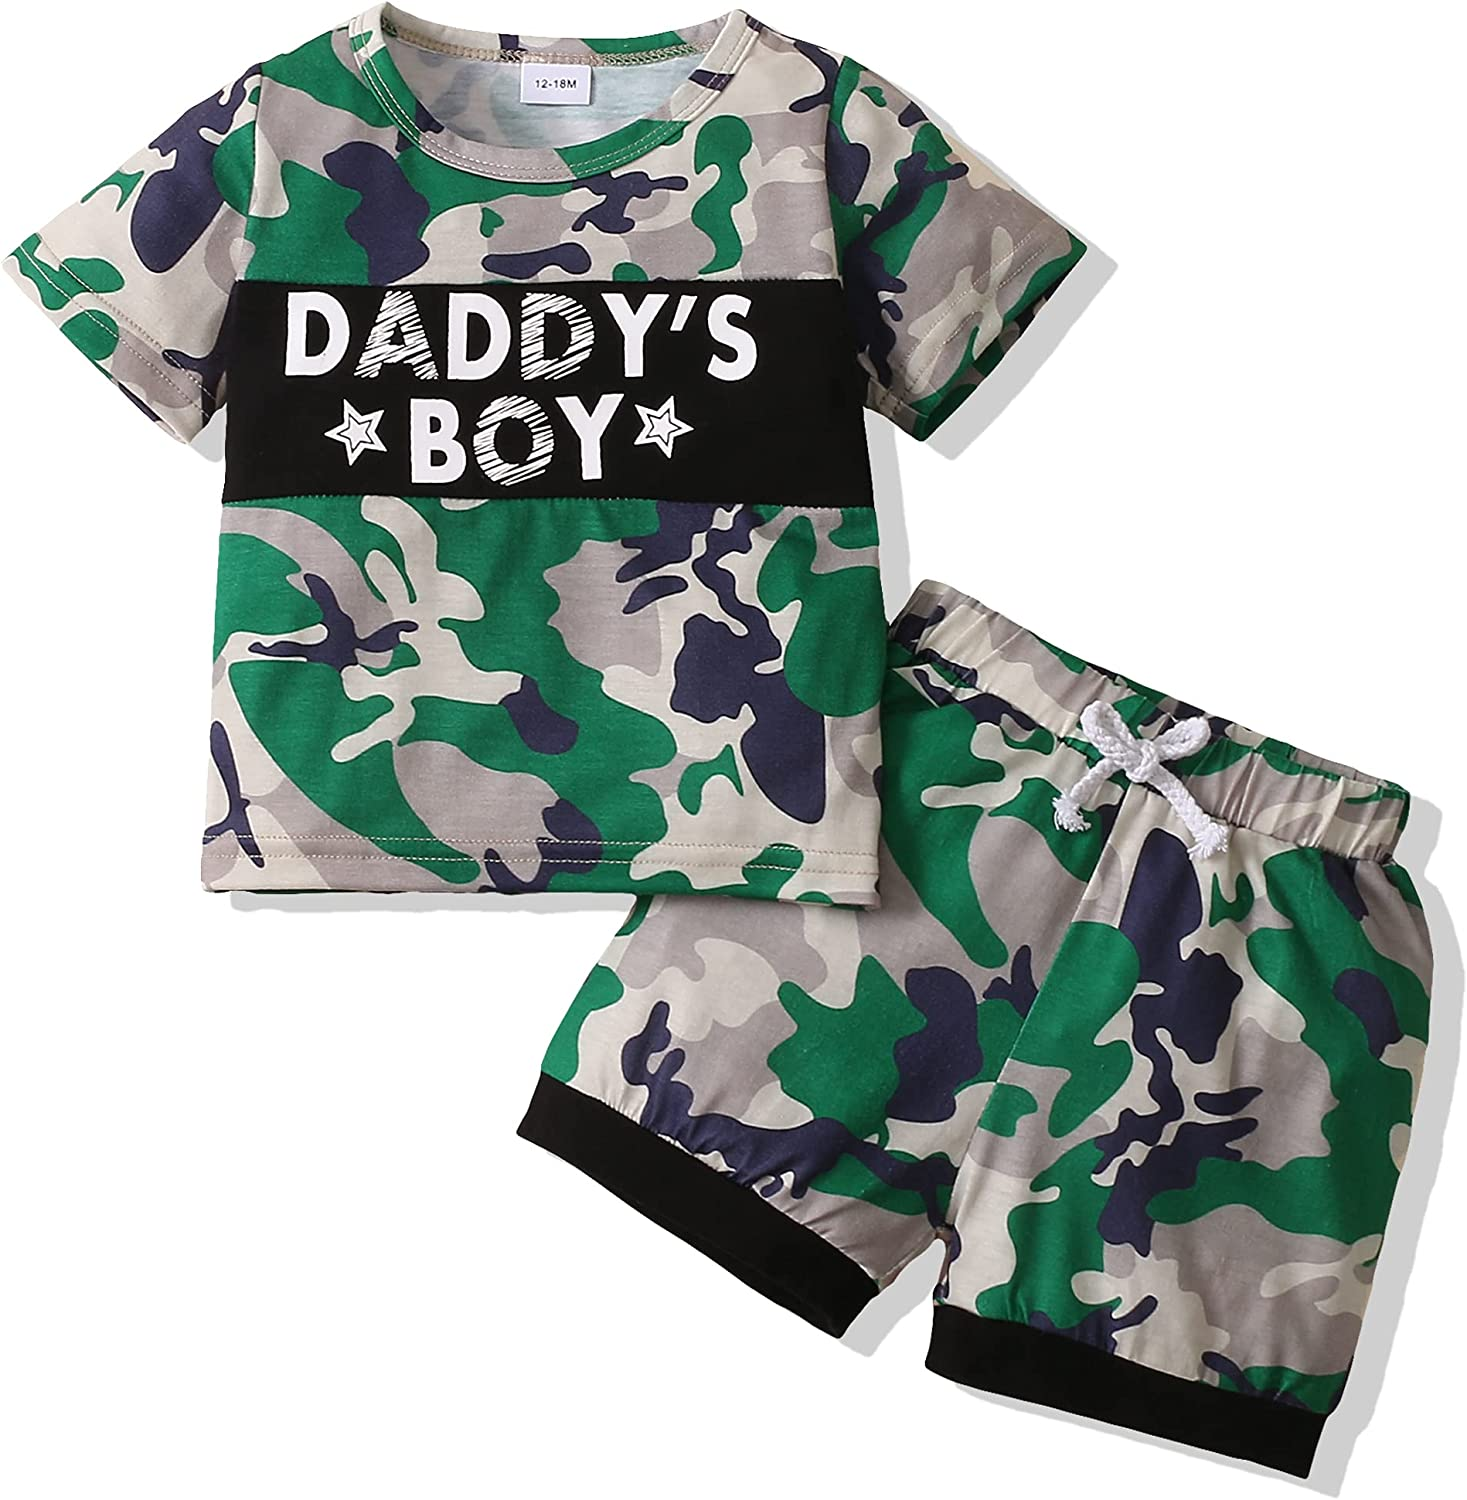 XUANHAO Baby Boy Clothes Infant Toddler Little Boys Clothes Hawaii Style Baby Boy Short Sets Tank Top + Short Pant 12M-5T